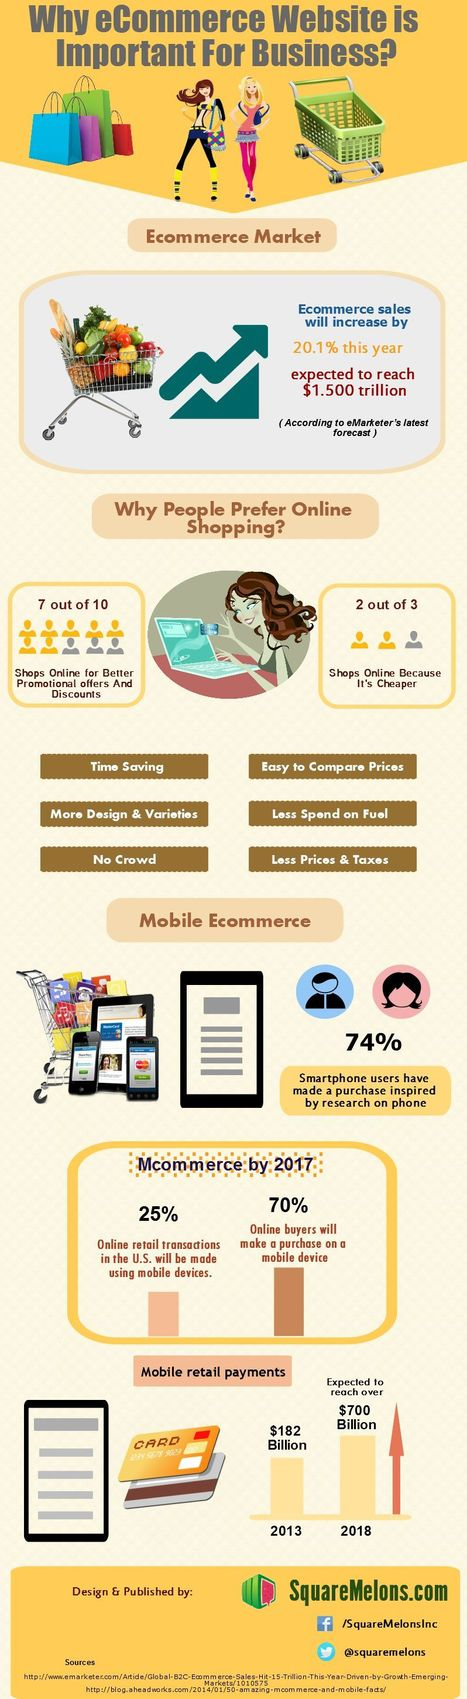 Why ecommerce website is important for business? | Web Design, Web Development , SEO, Mobile App Topics | Scoop.it